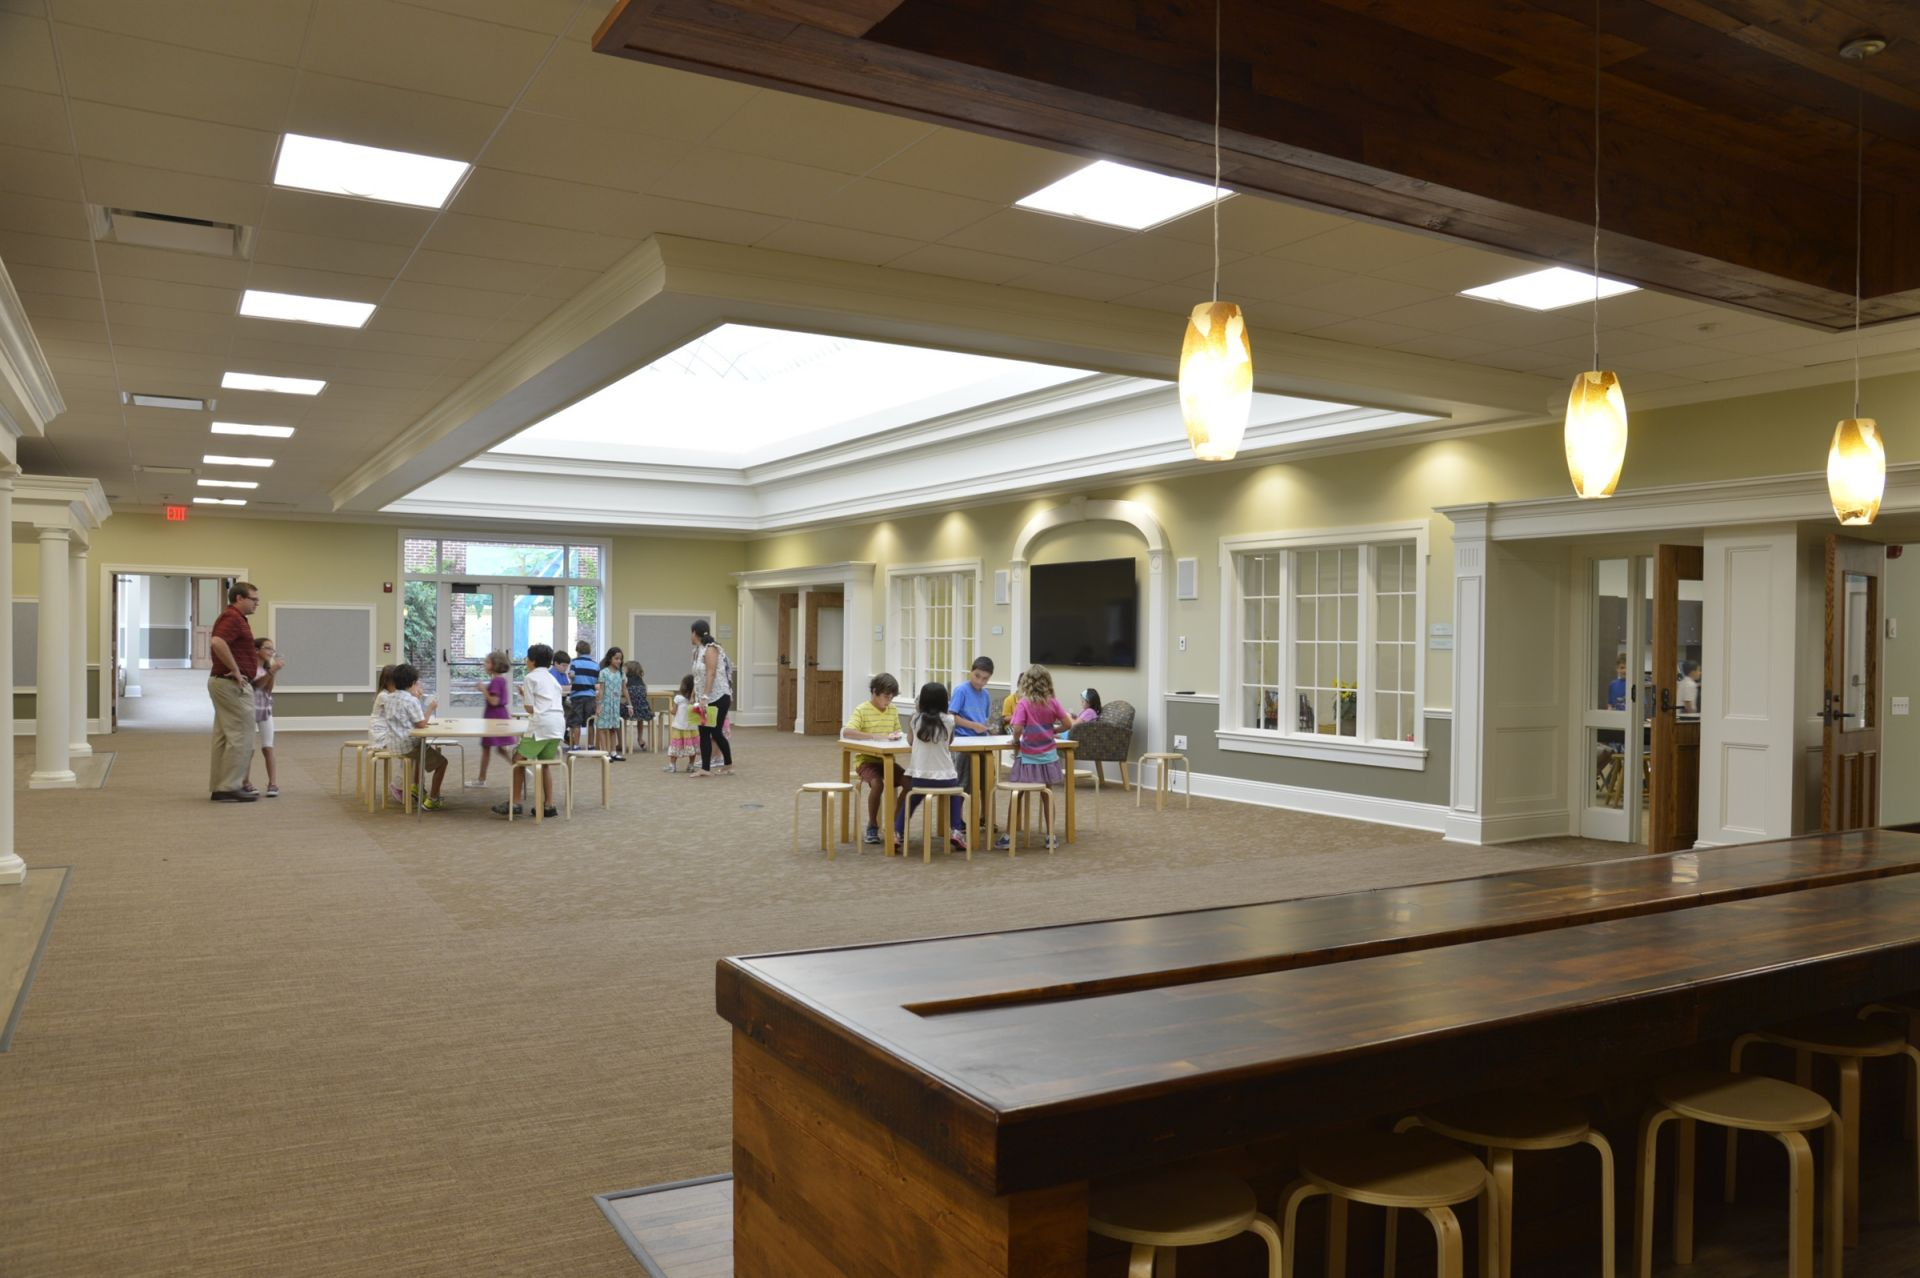 Hurwitz Hall is surrounded by 2nd and 3rd grade classrooms that look into the common space.